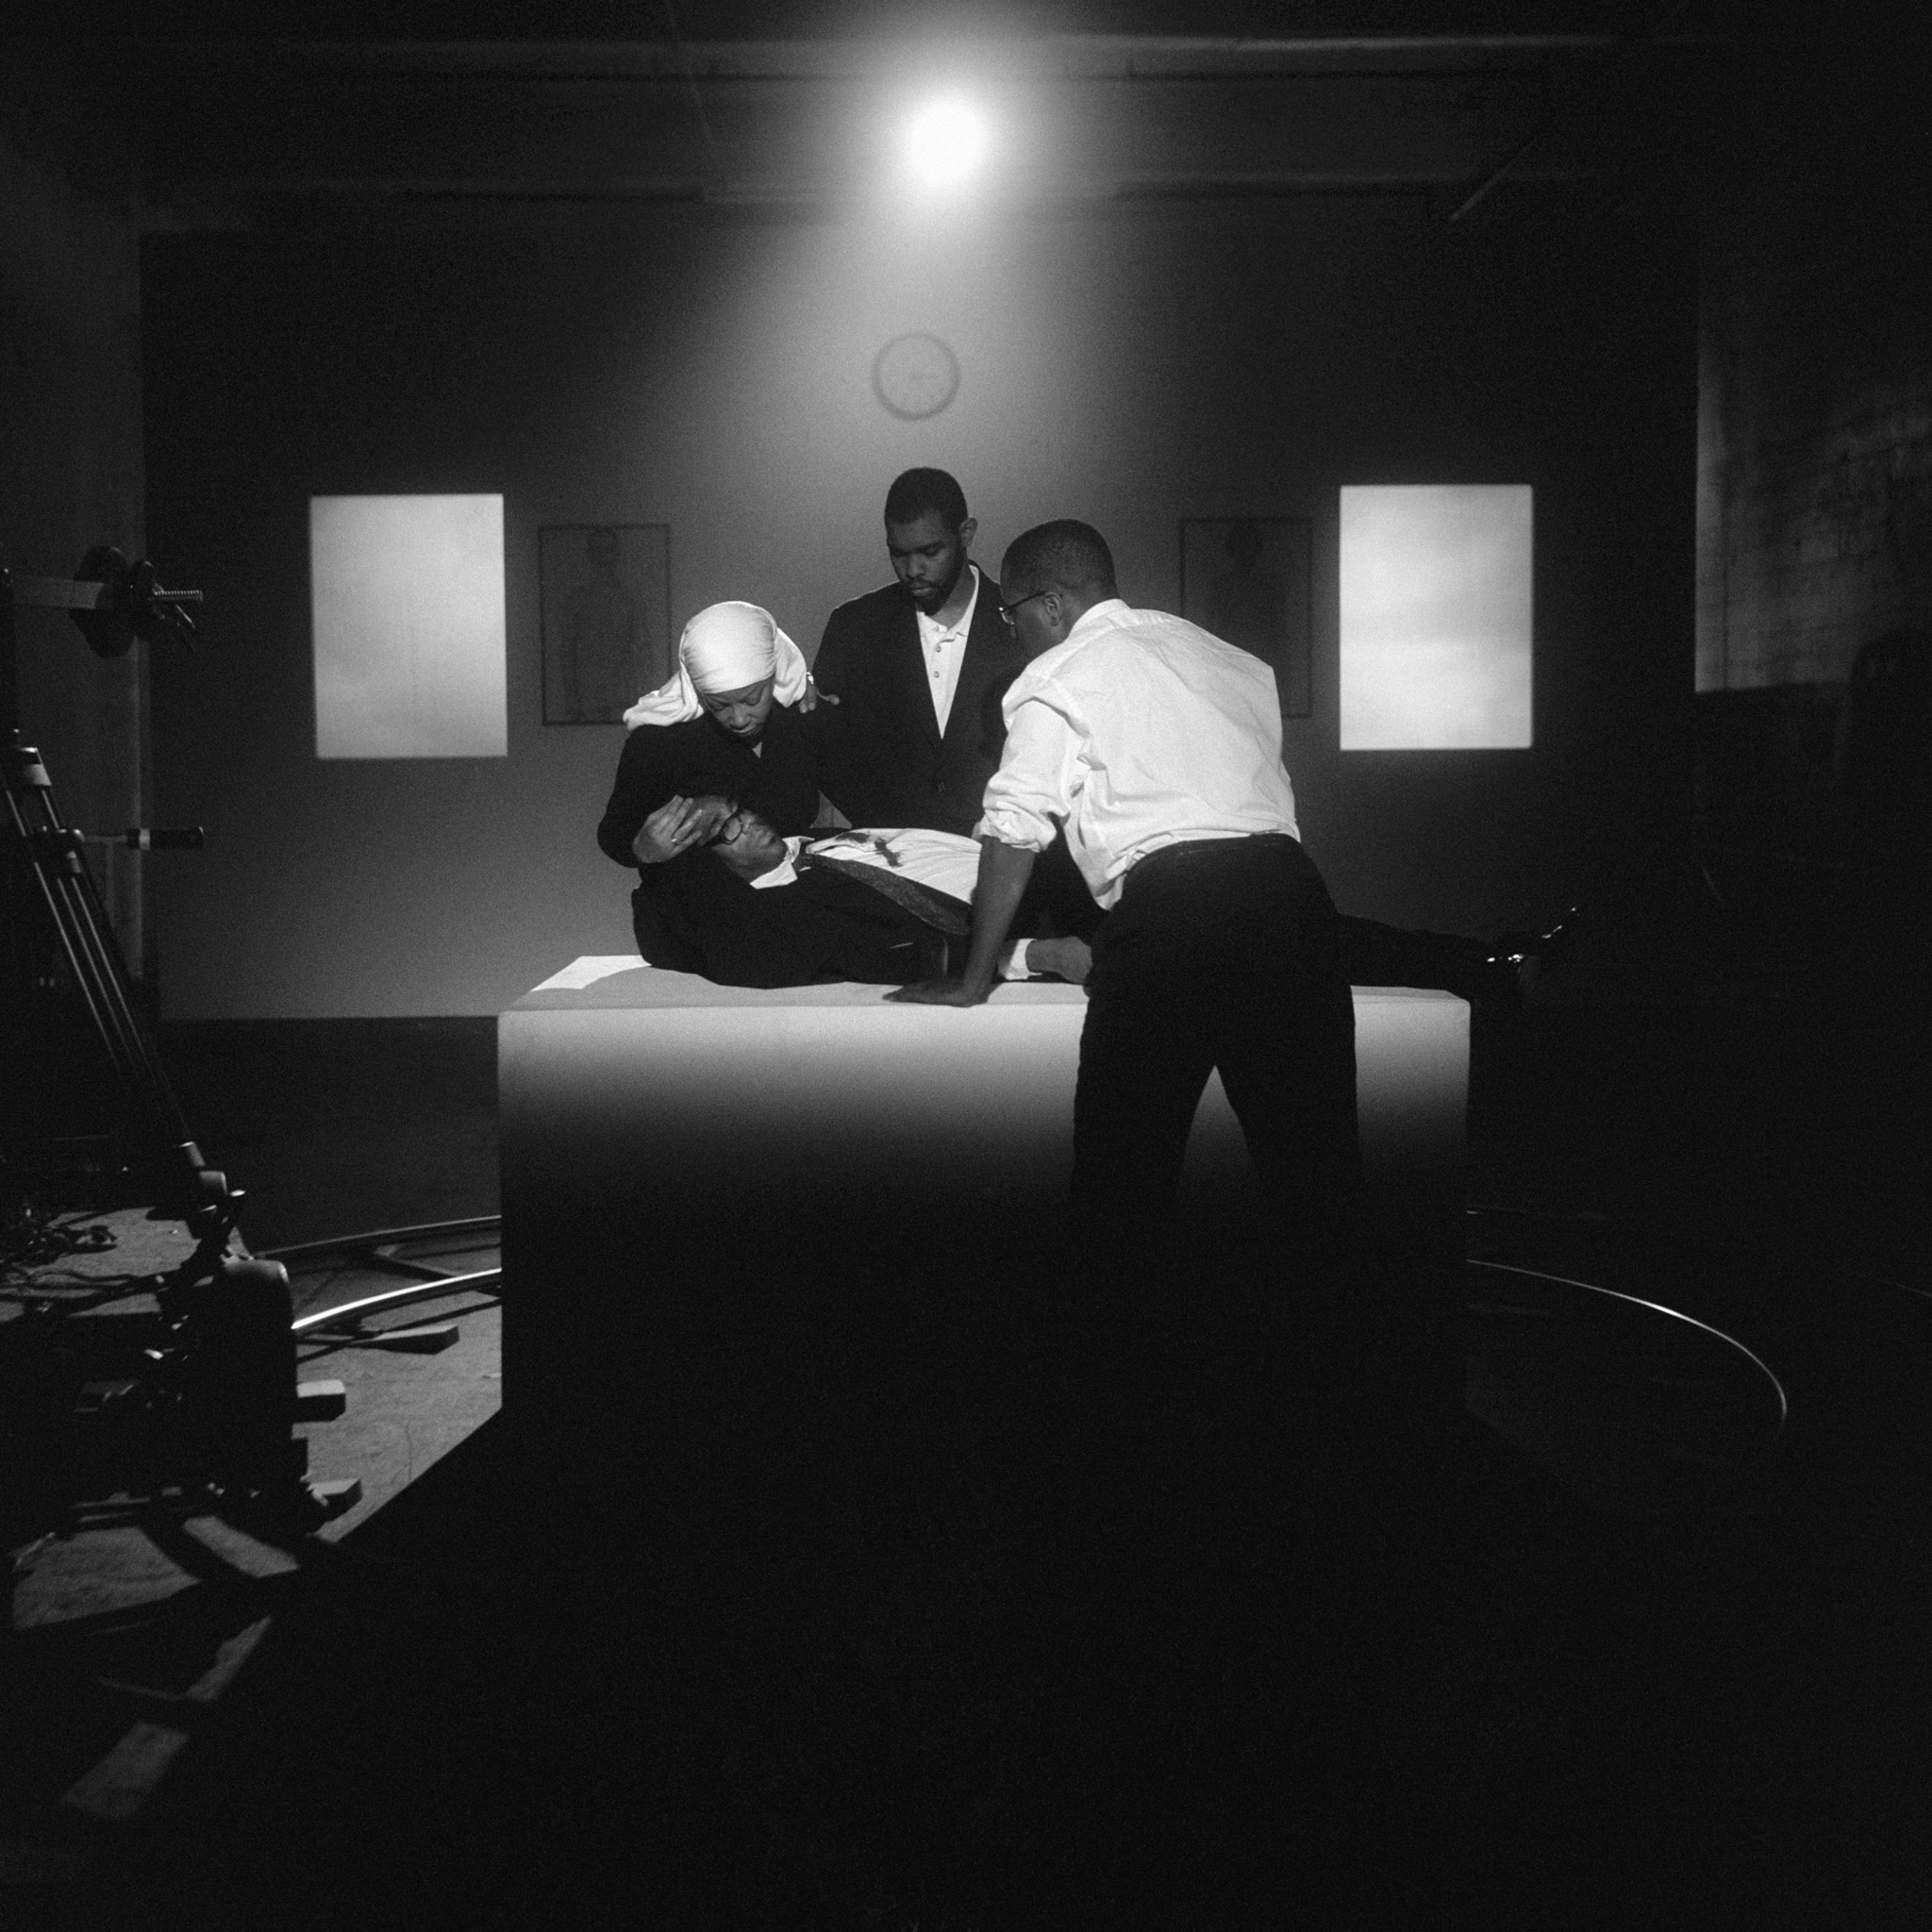 """""""The Assassination of Medgar, Malcolm, and Martin,"""" 2008, an archival pigment print by Carrie Mae Weems, provides a contemporary view of the Black Panther Party."""